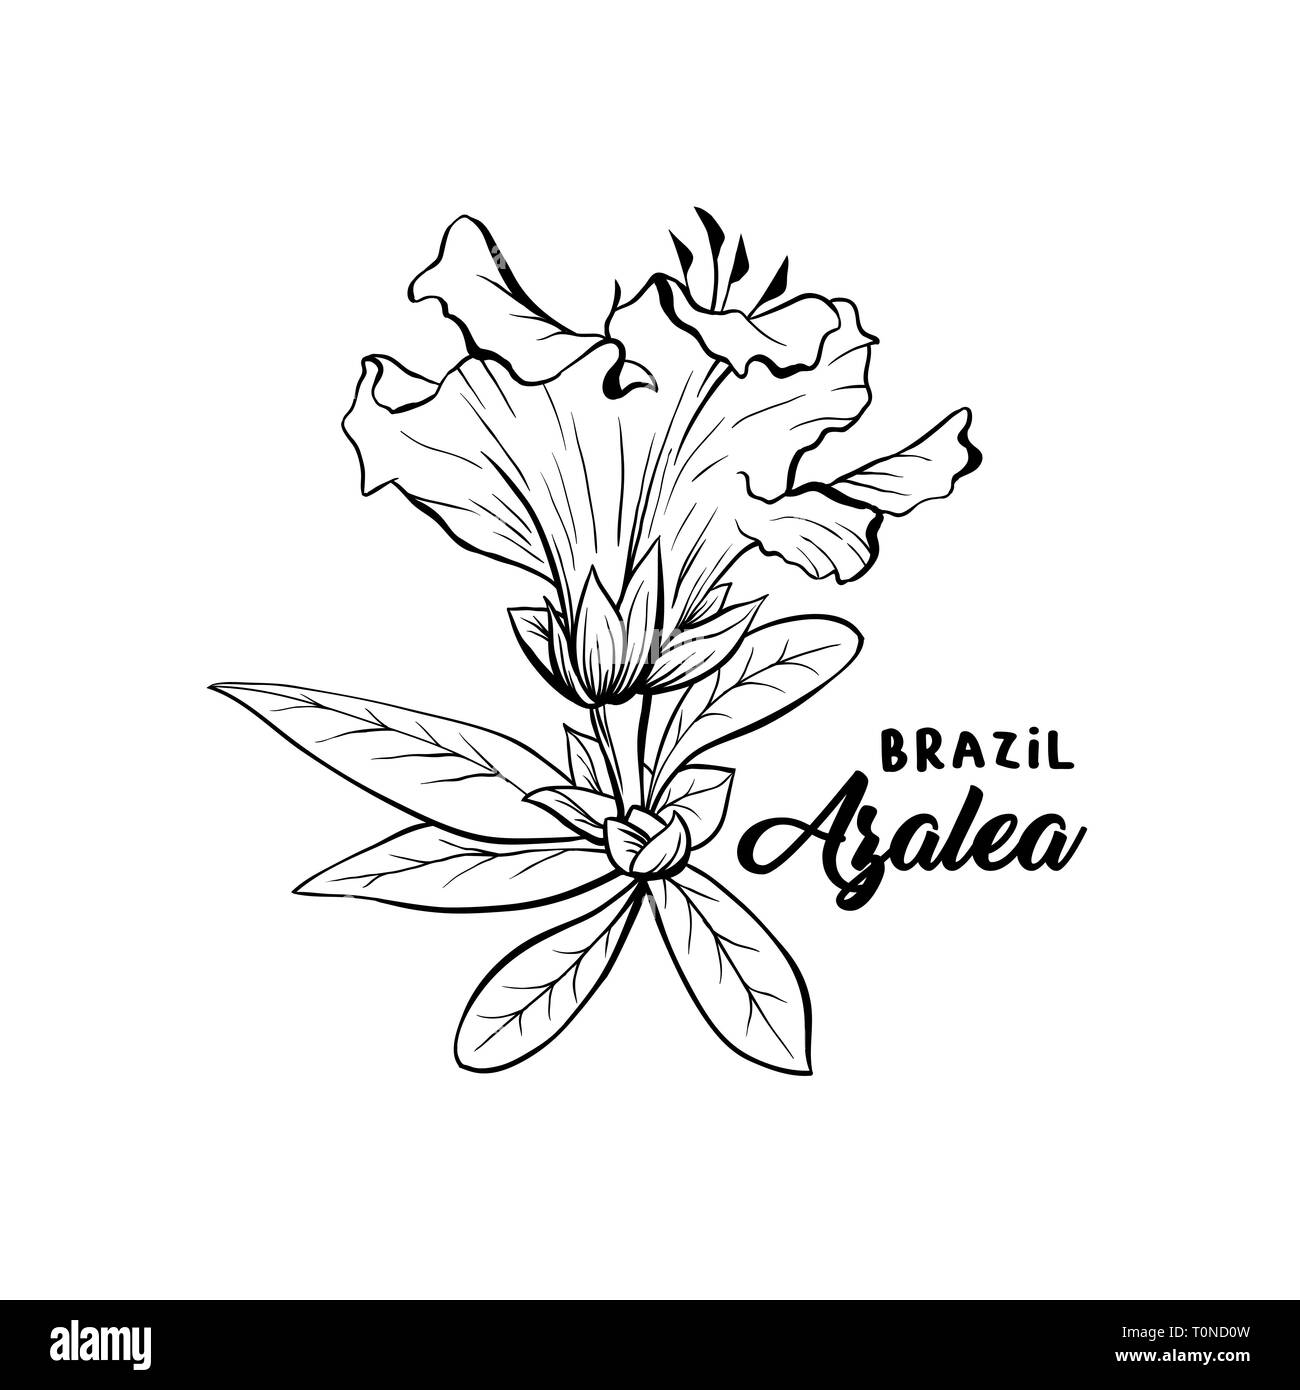 Azalea Flower Brazilian Symbol, ericaceae flowers, hand drawn logo illustration. Beautiful blooming plant inky sketch. Freehand outline floral blossom. Monochrome graphic isolated design element - Stock Vector